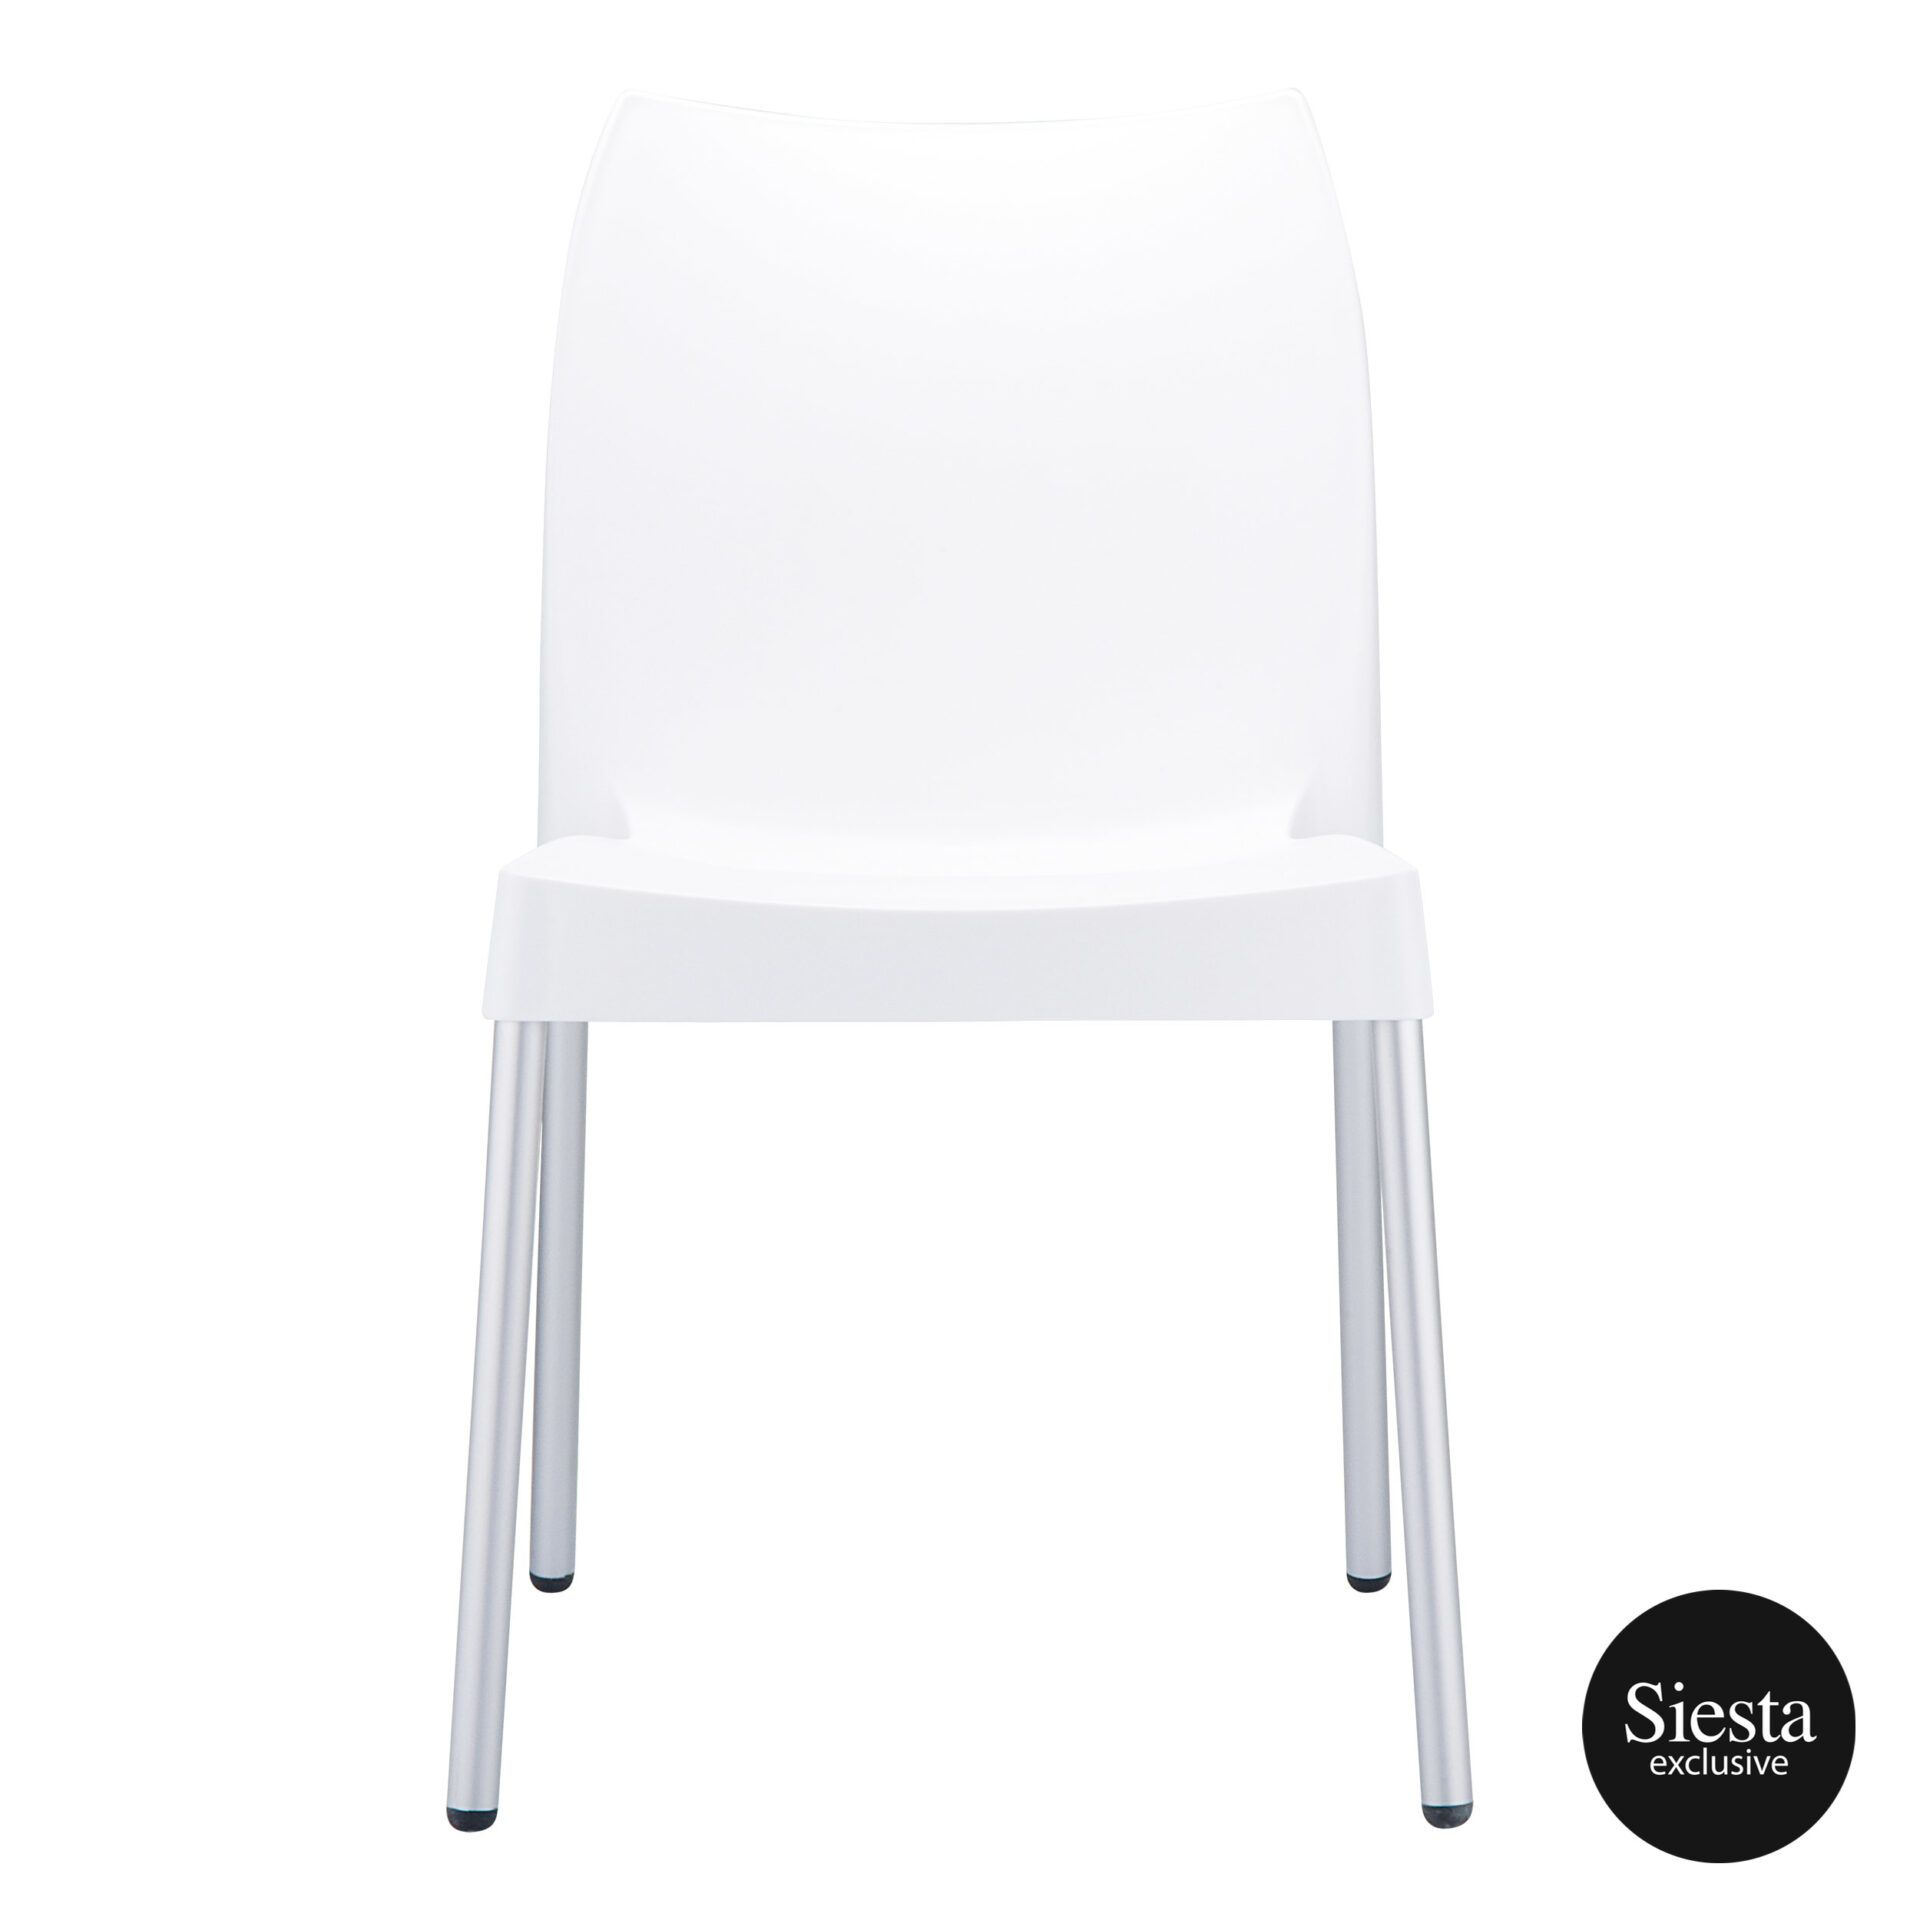 commercial outdoor hospitality seating vita chair white front 1